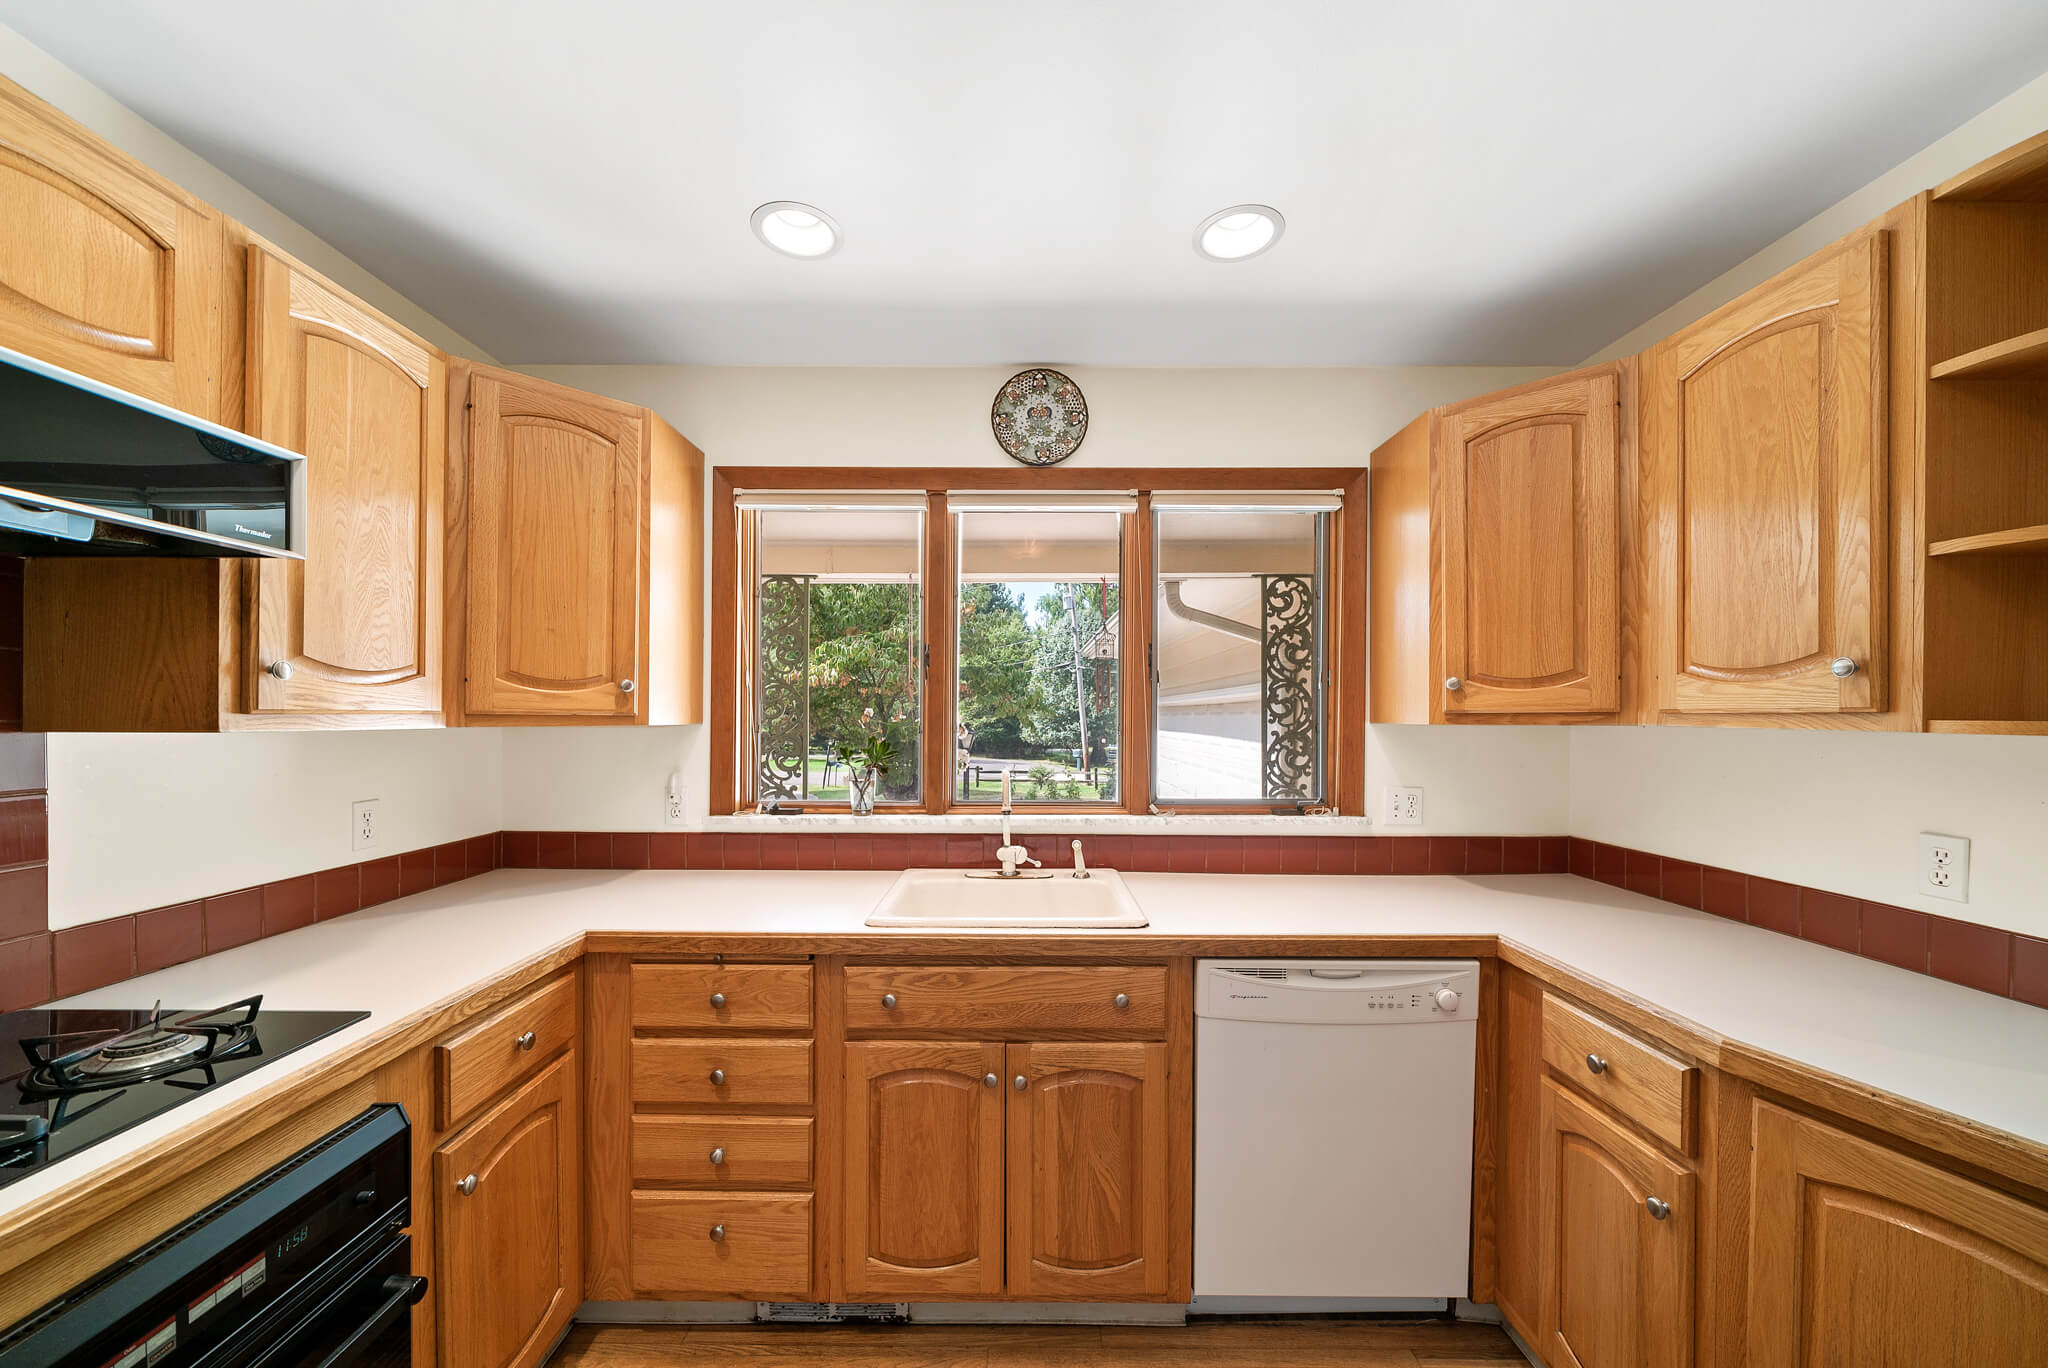 A great view out of the windows at 4349 Orandale Dr in Chagrin Falls